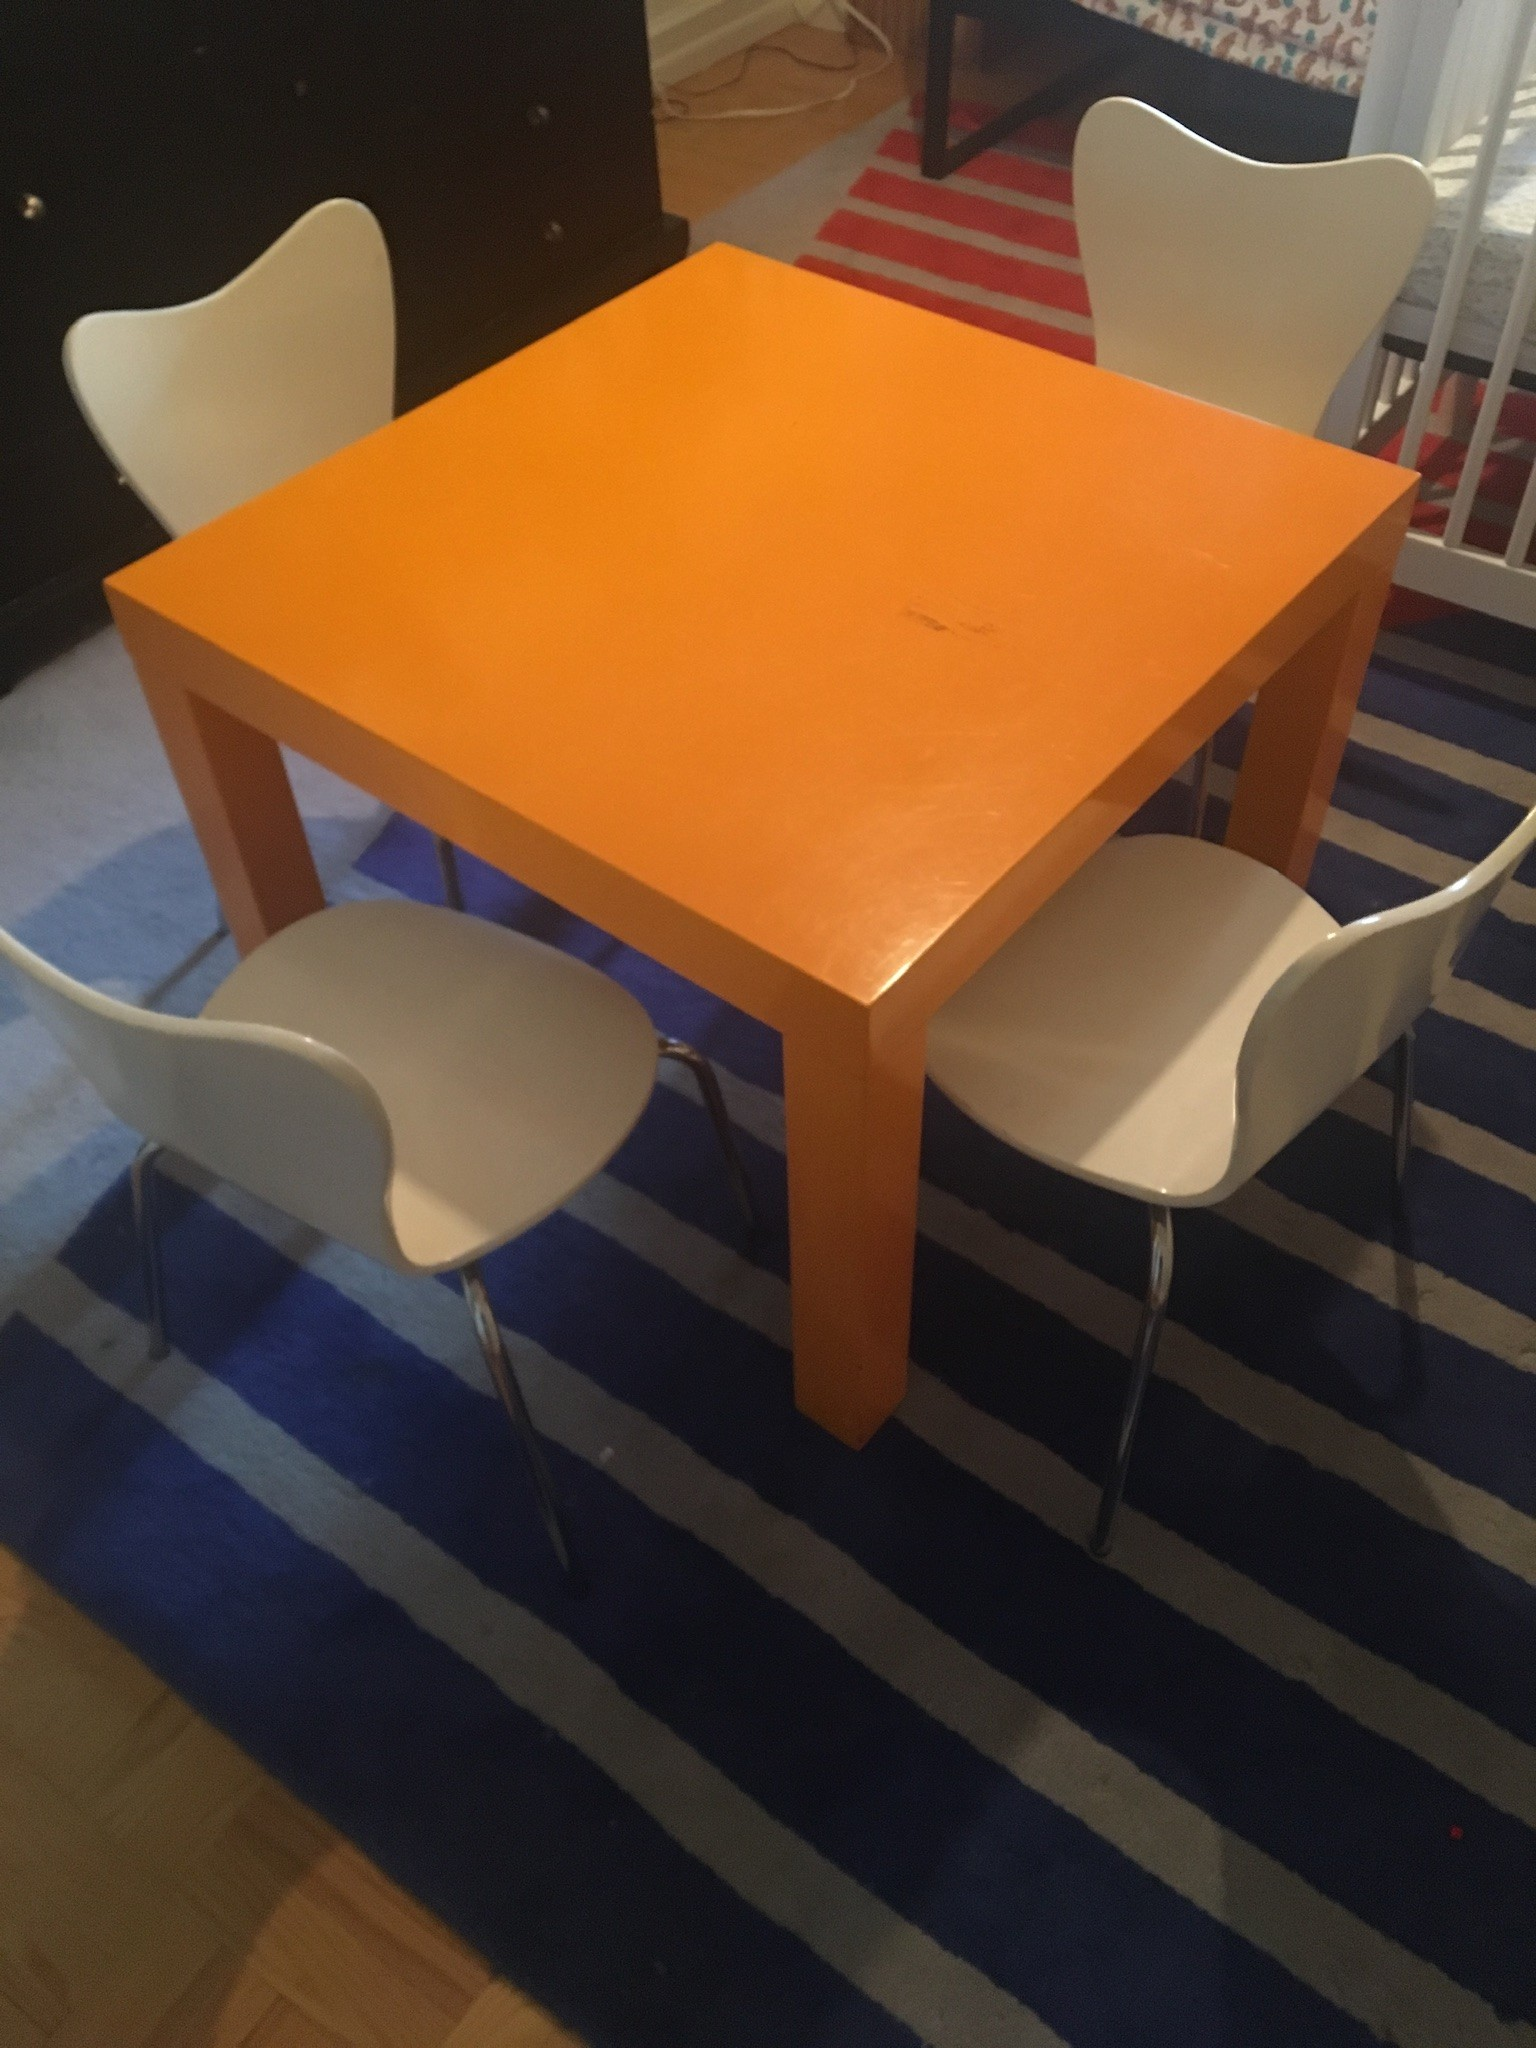 Pottery Barn Kids Activity Table w/ 4 Chairs